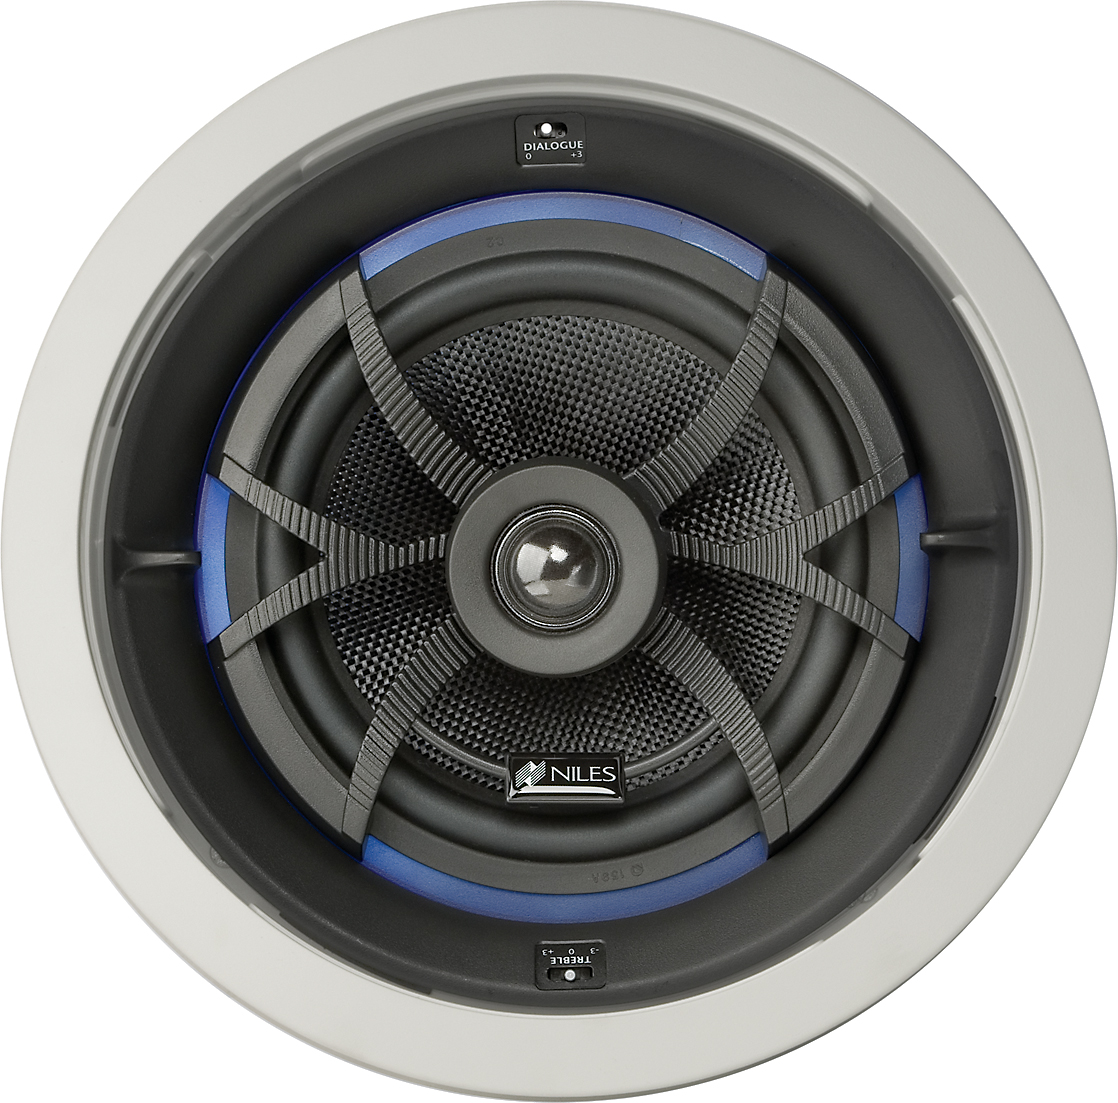 Niles in-ceiling speakers: CM700 Series  Clever Home automation